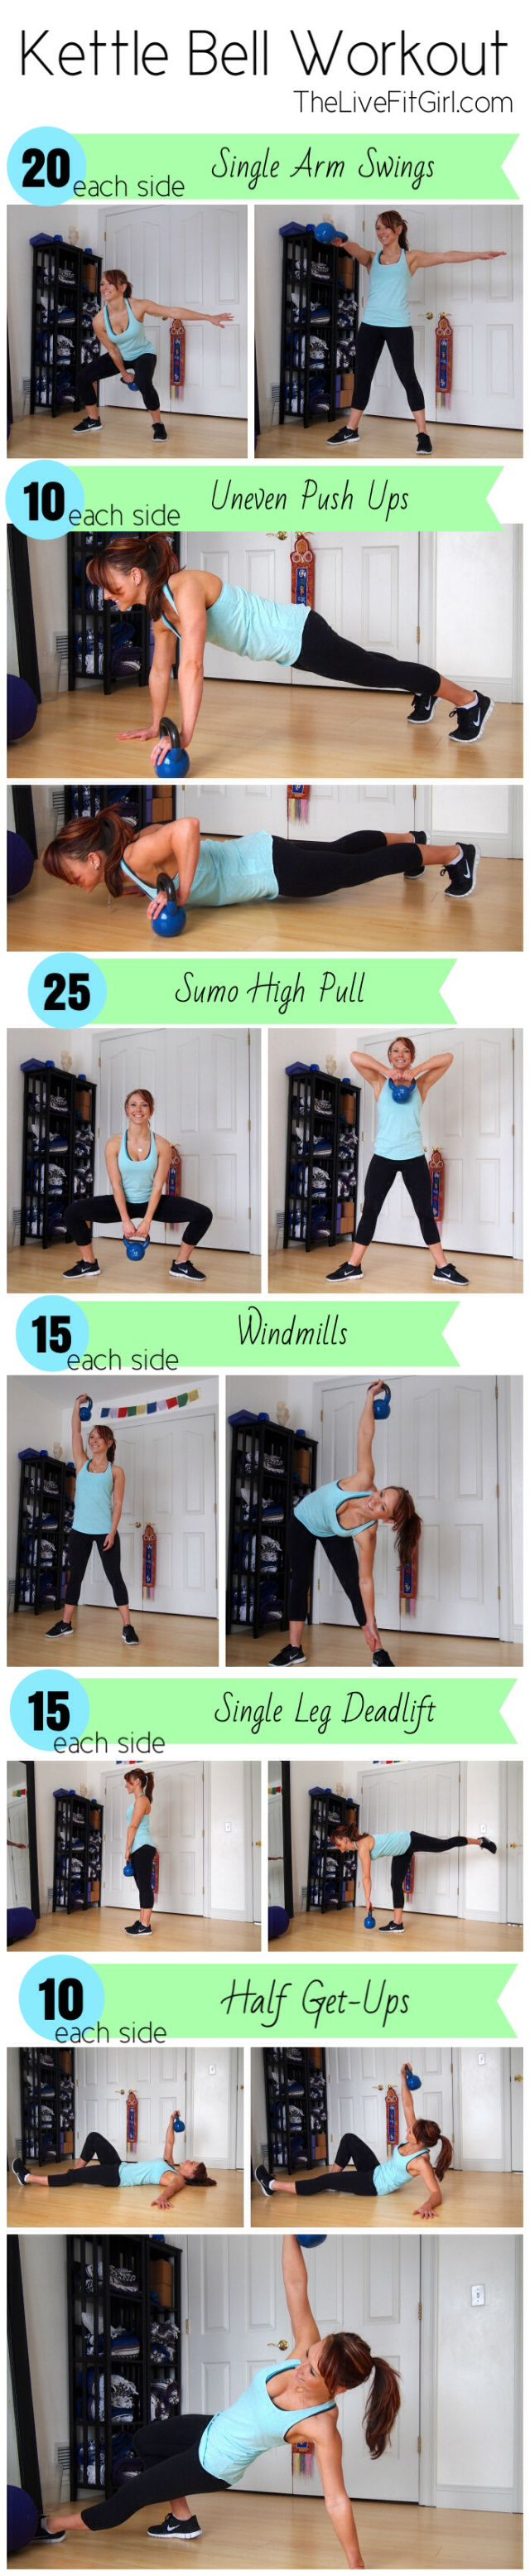 Kettlebell Workout - burn tons of calories with this full body workout!